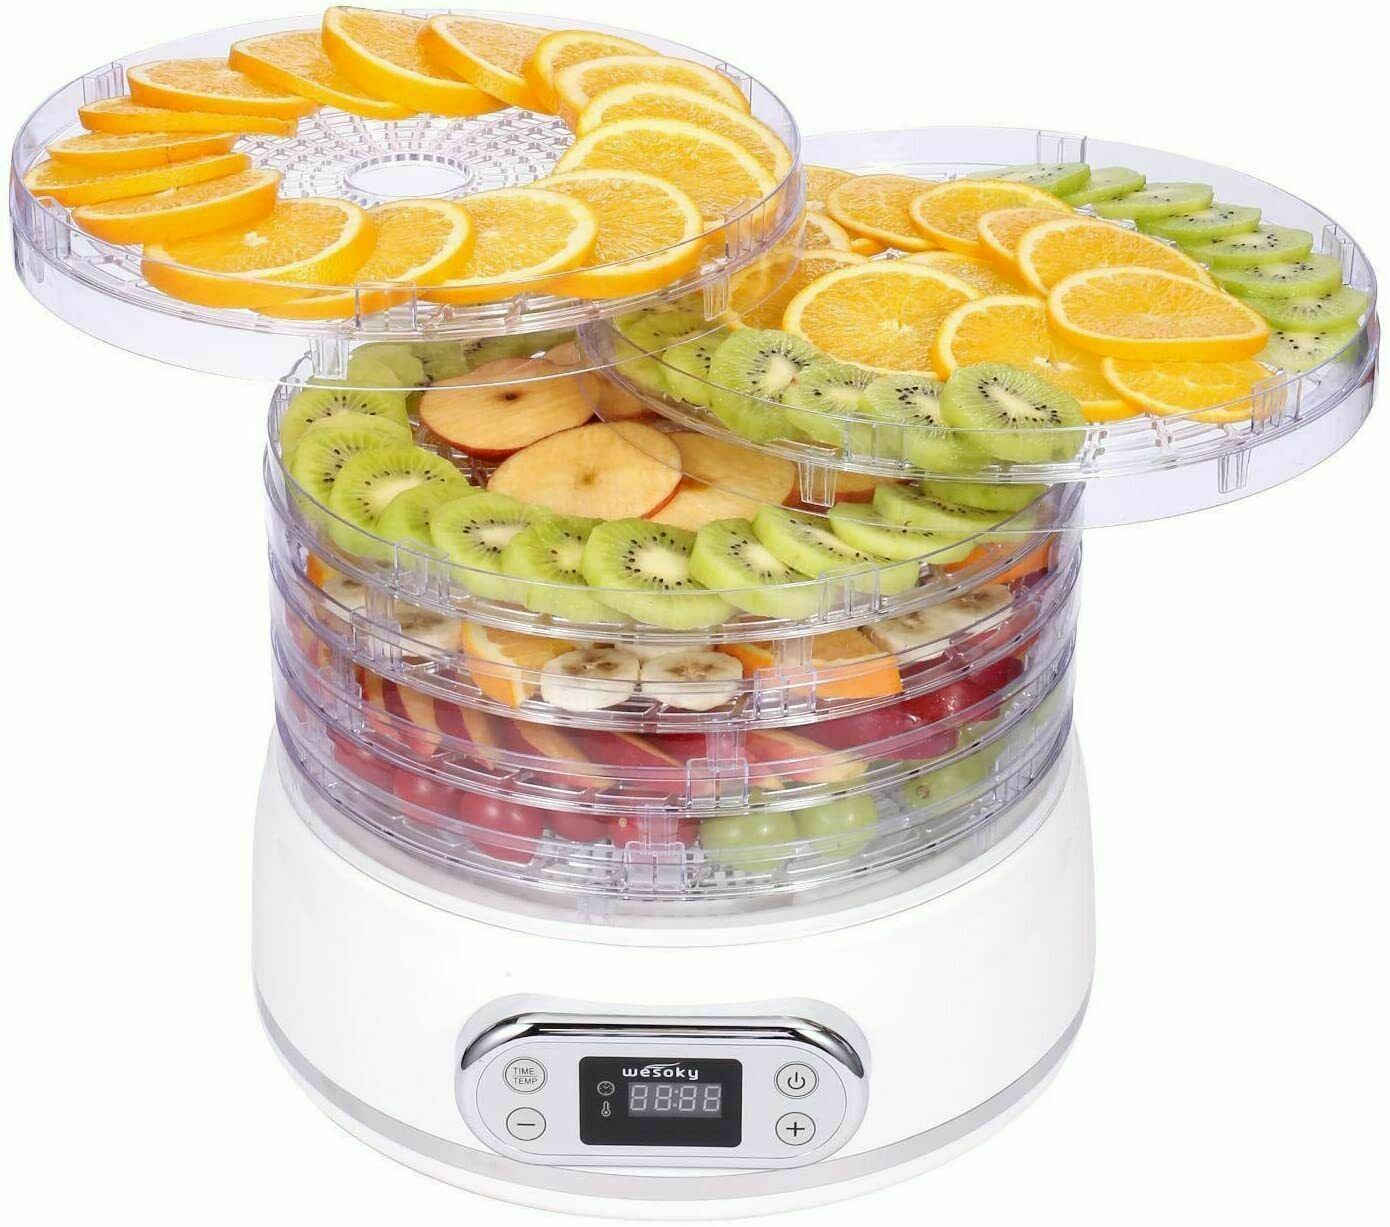 6 Tier Food Dehydrator Machine Meat Beef Jerky Maker Fruit P